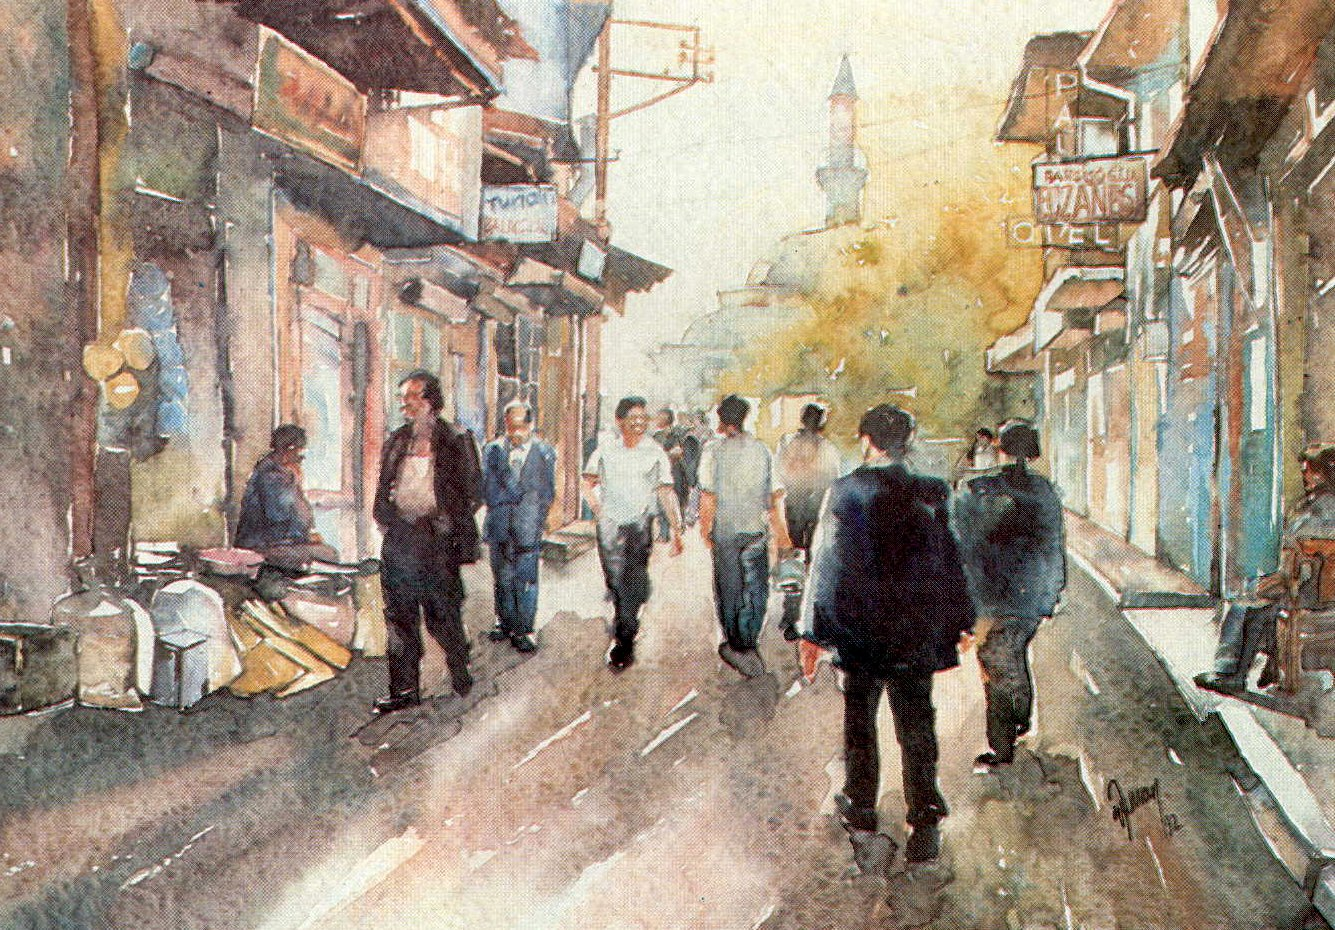 Tilkilik street seen in Izmir